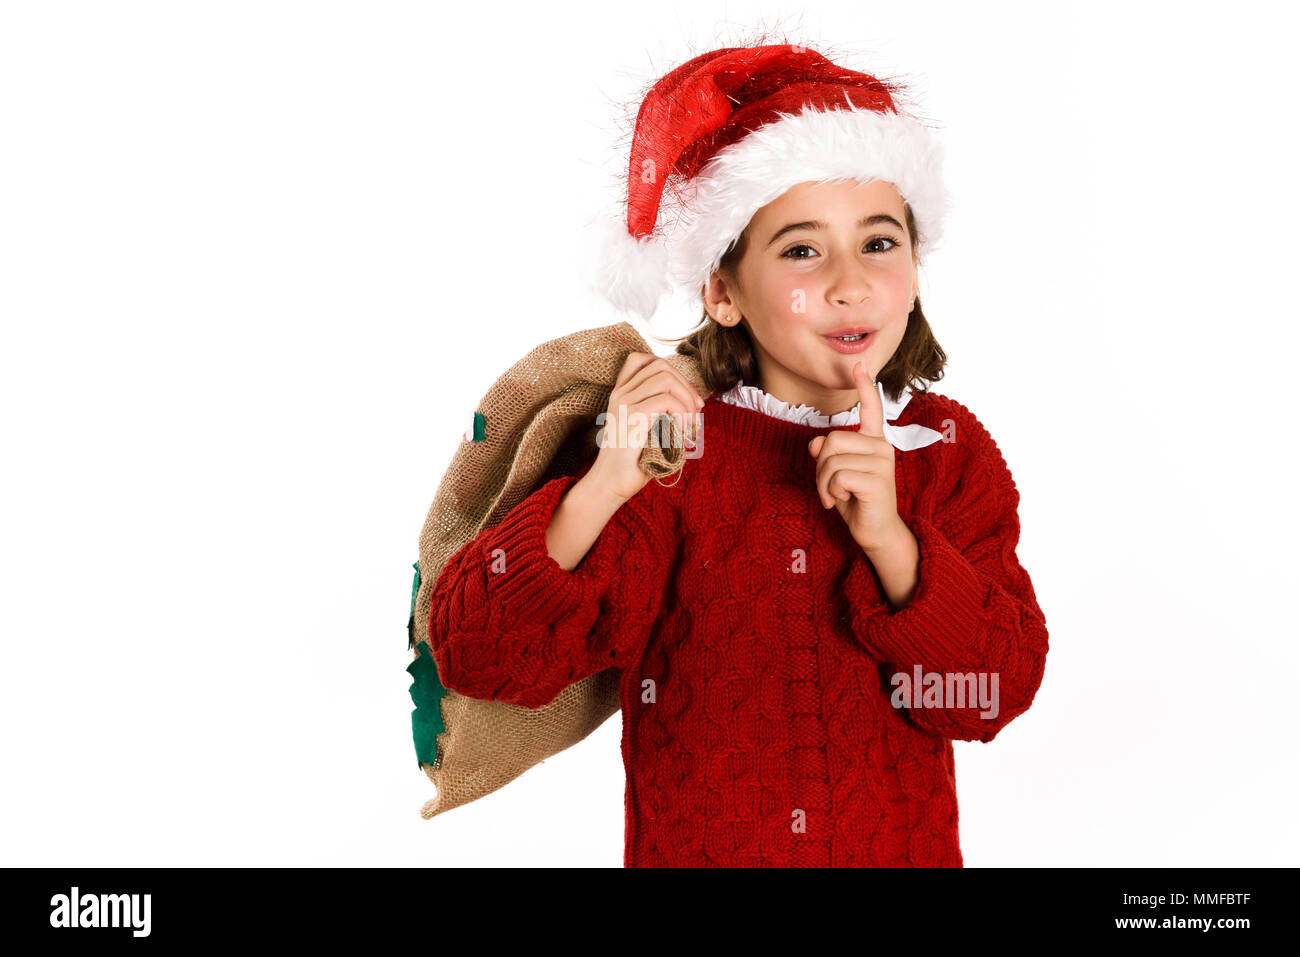 7acbf8702 Adorable little girl wearing santa hat carrying gift bag isolated on ...